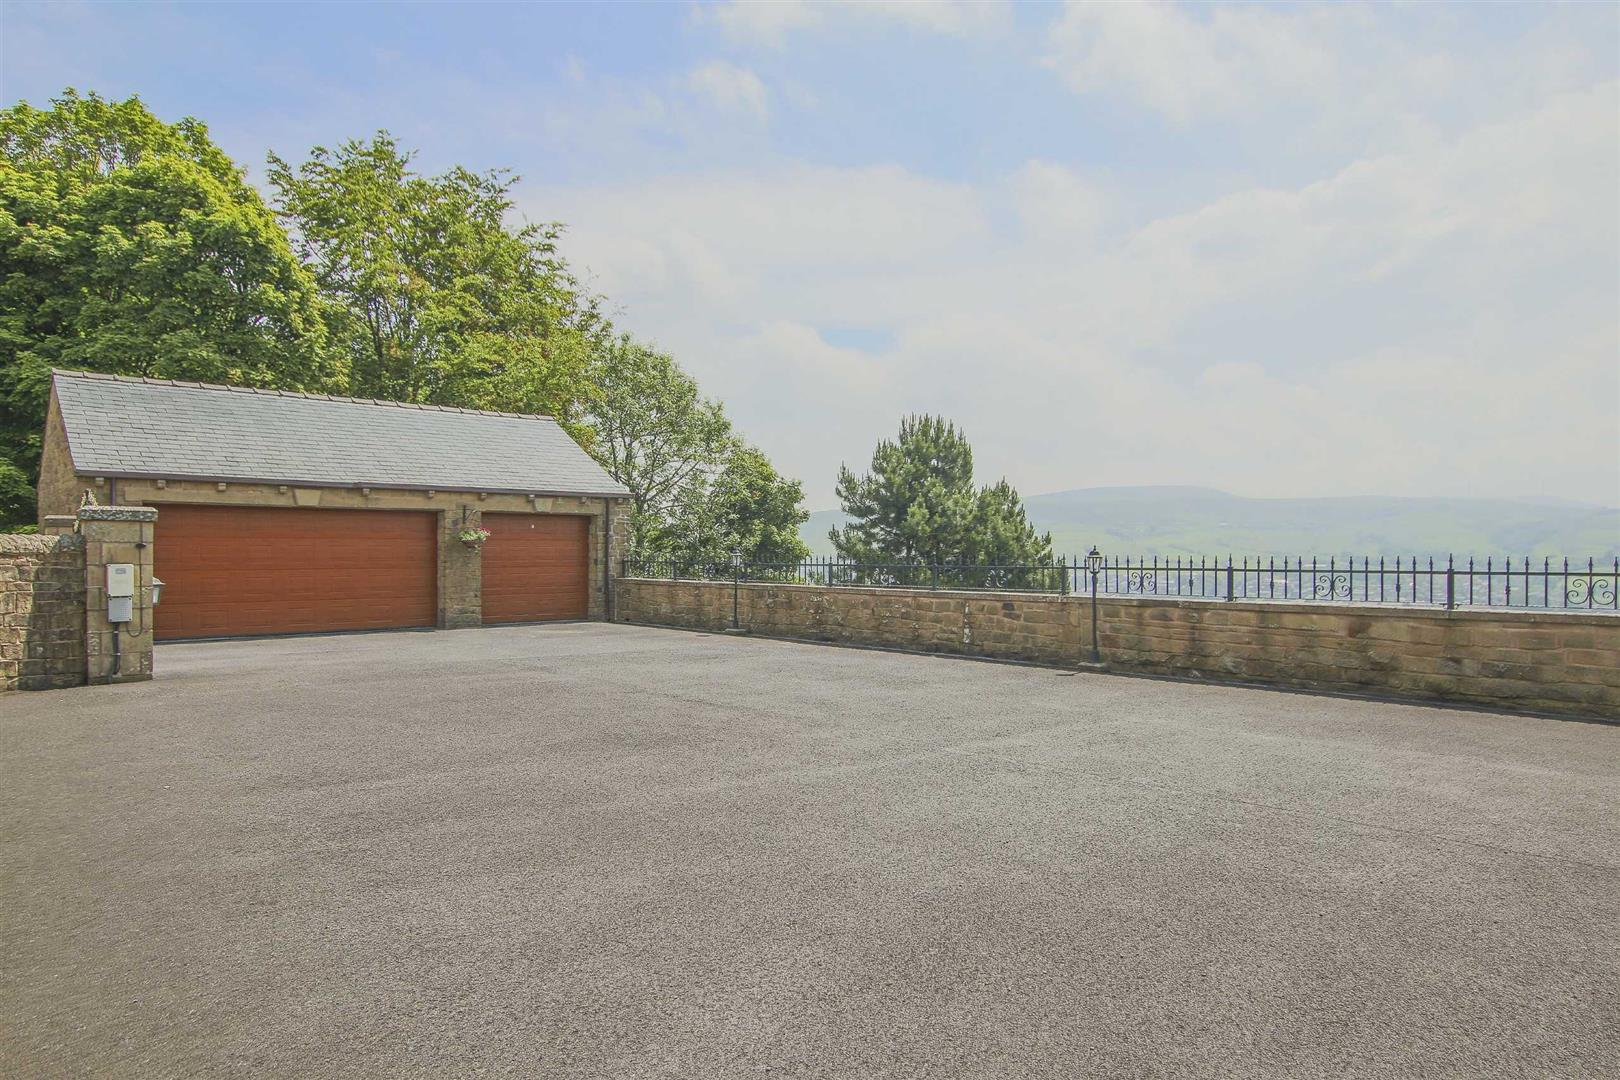 4 Bedroom Barn Conversion For Sale - p033135_50.jpg